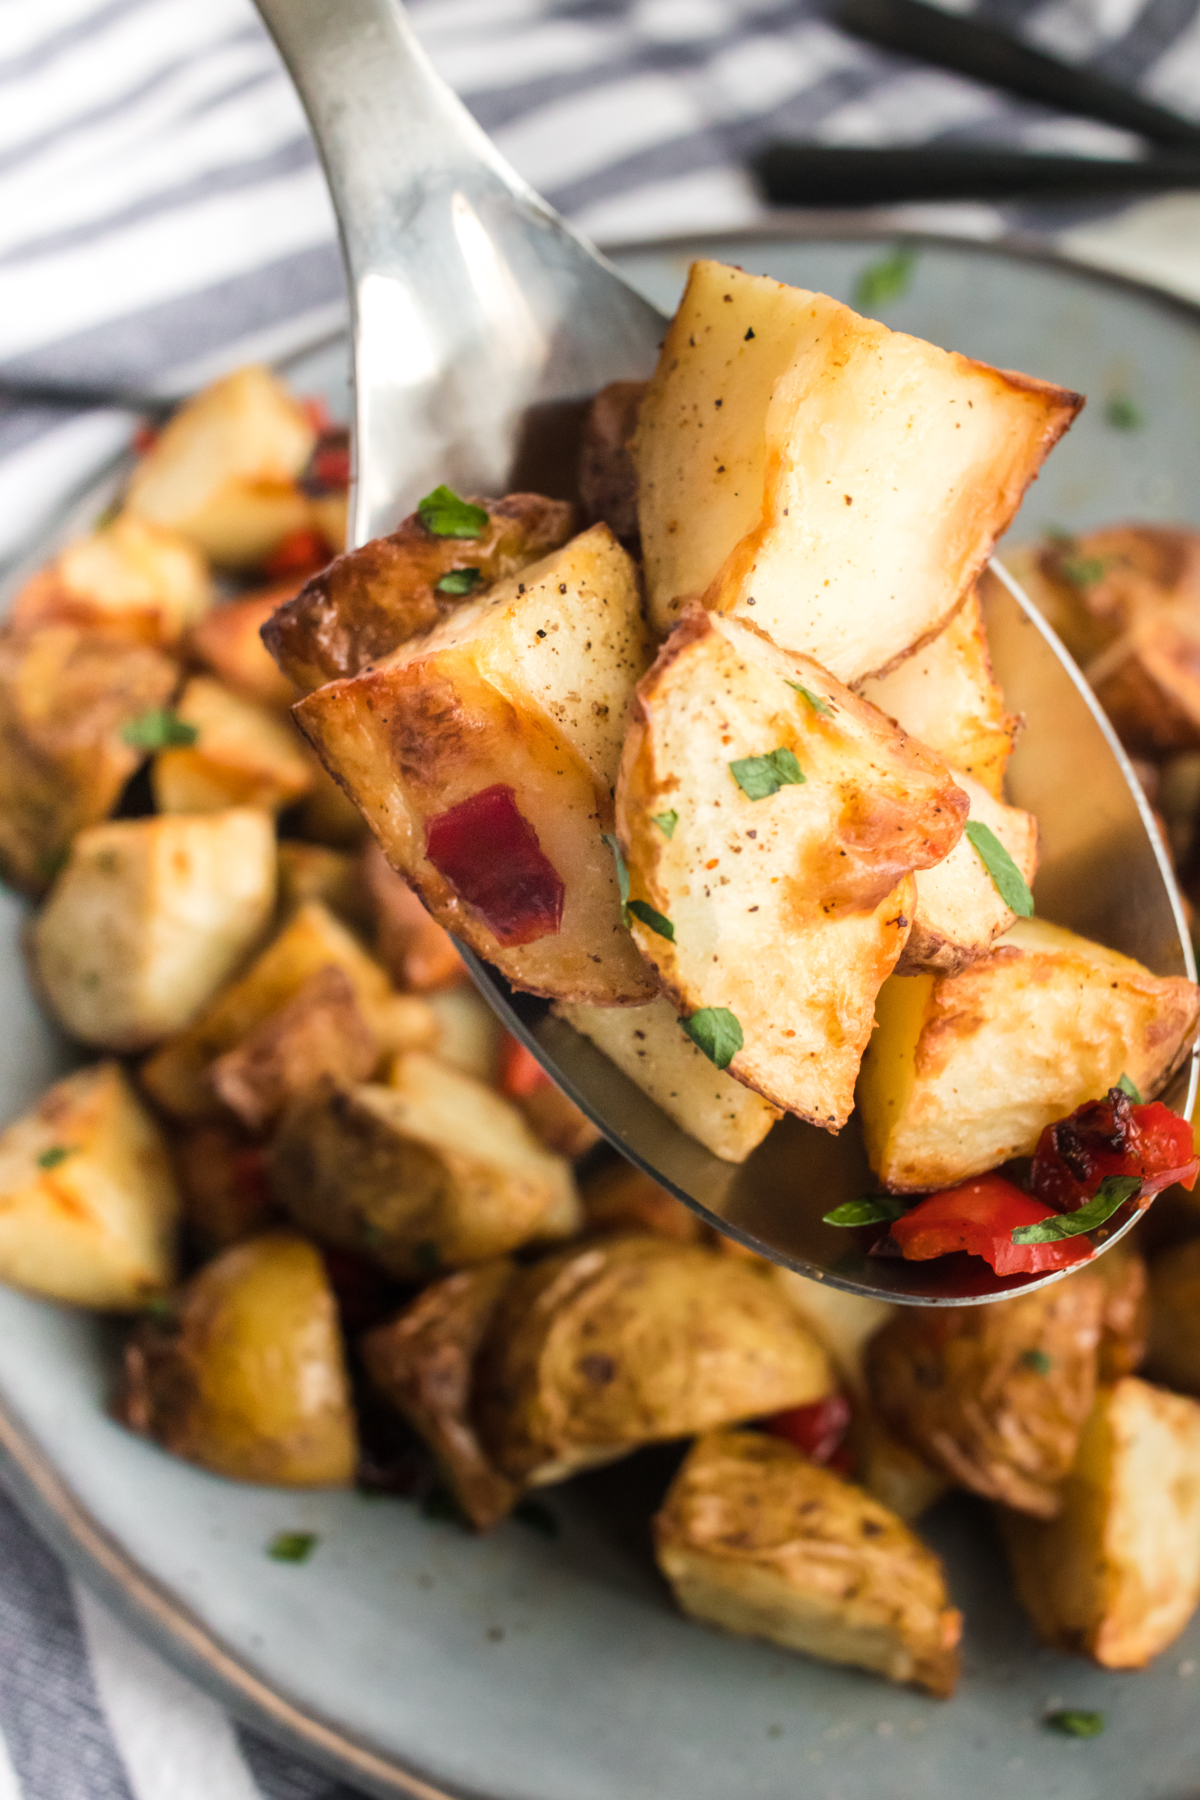 A spoon lifts up some chunks of cooked potatoes with red bell peppers.